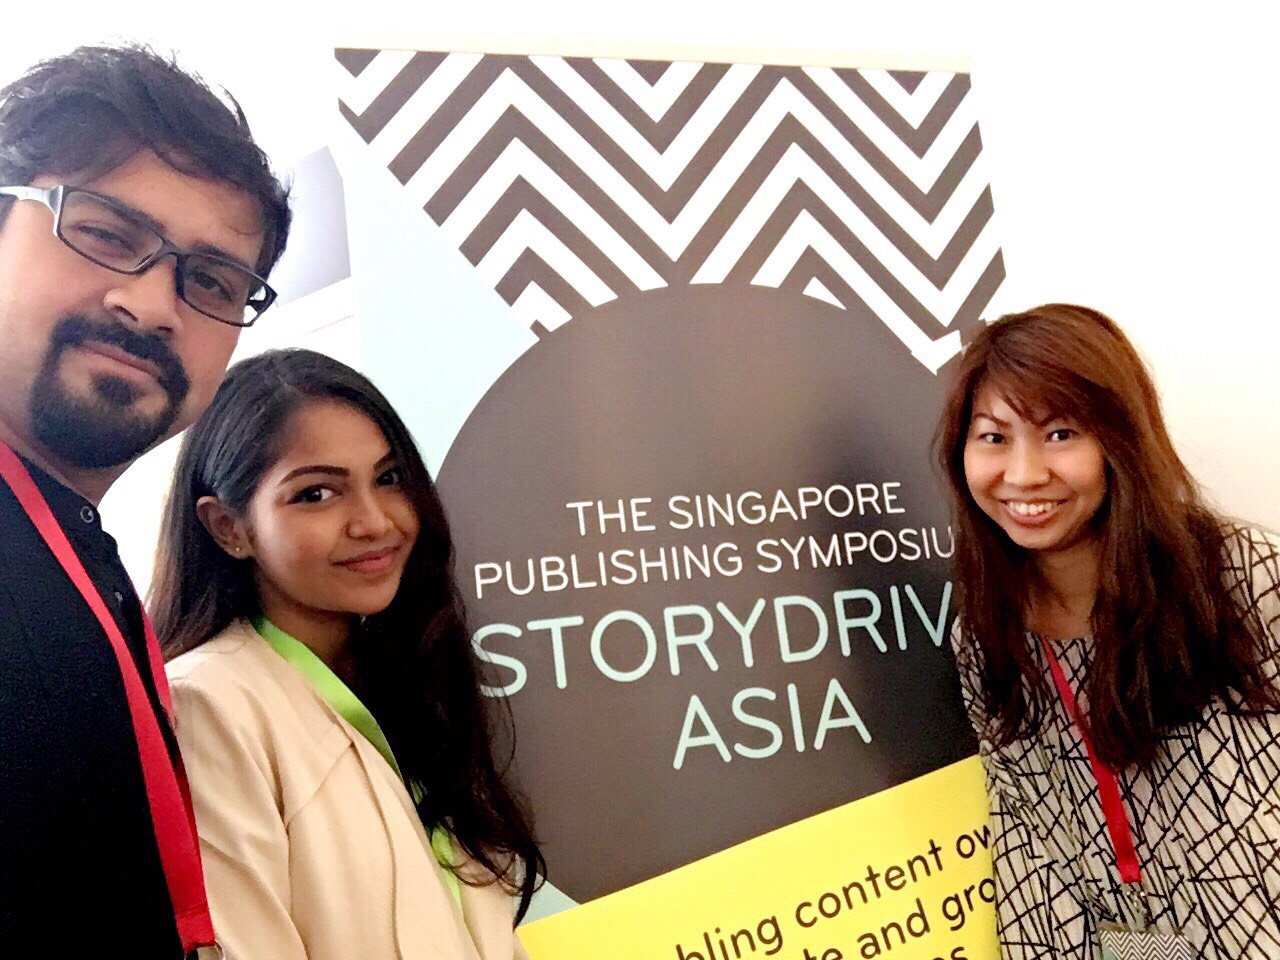 3 ideas from Storydrive Asia